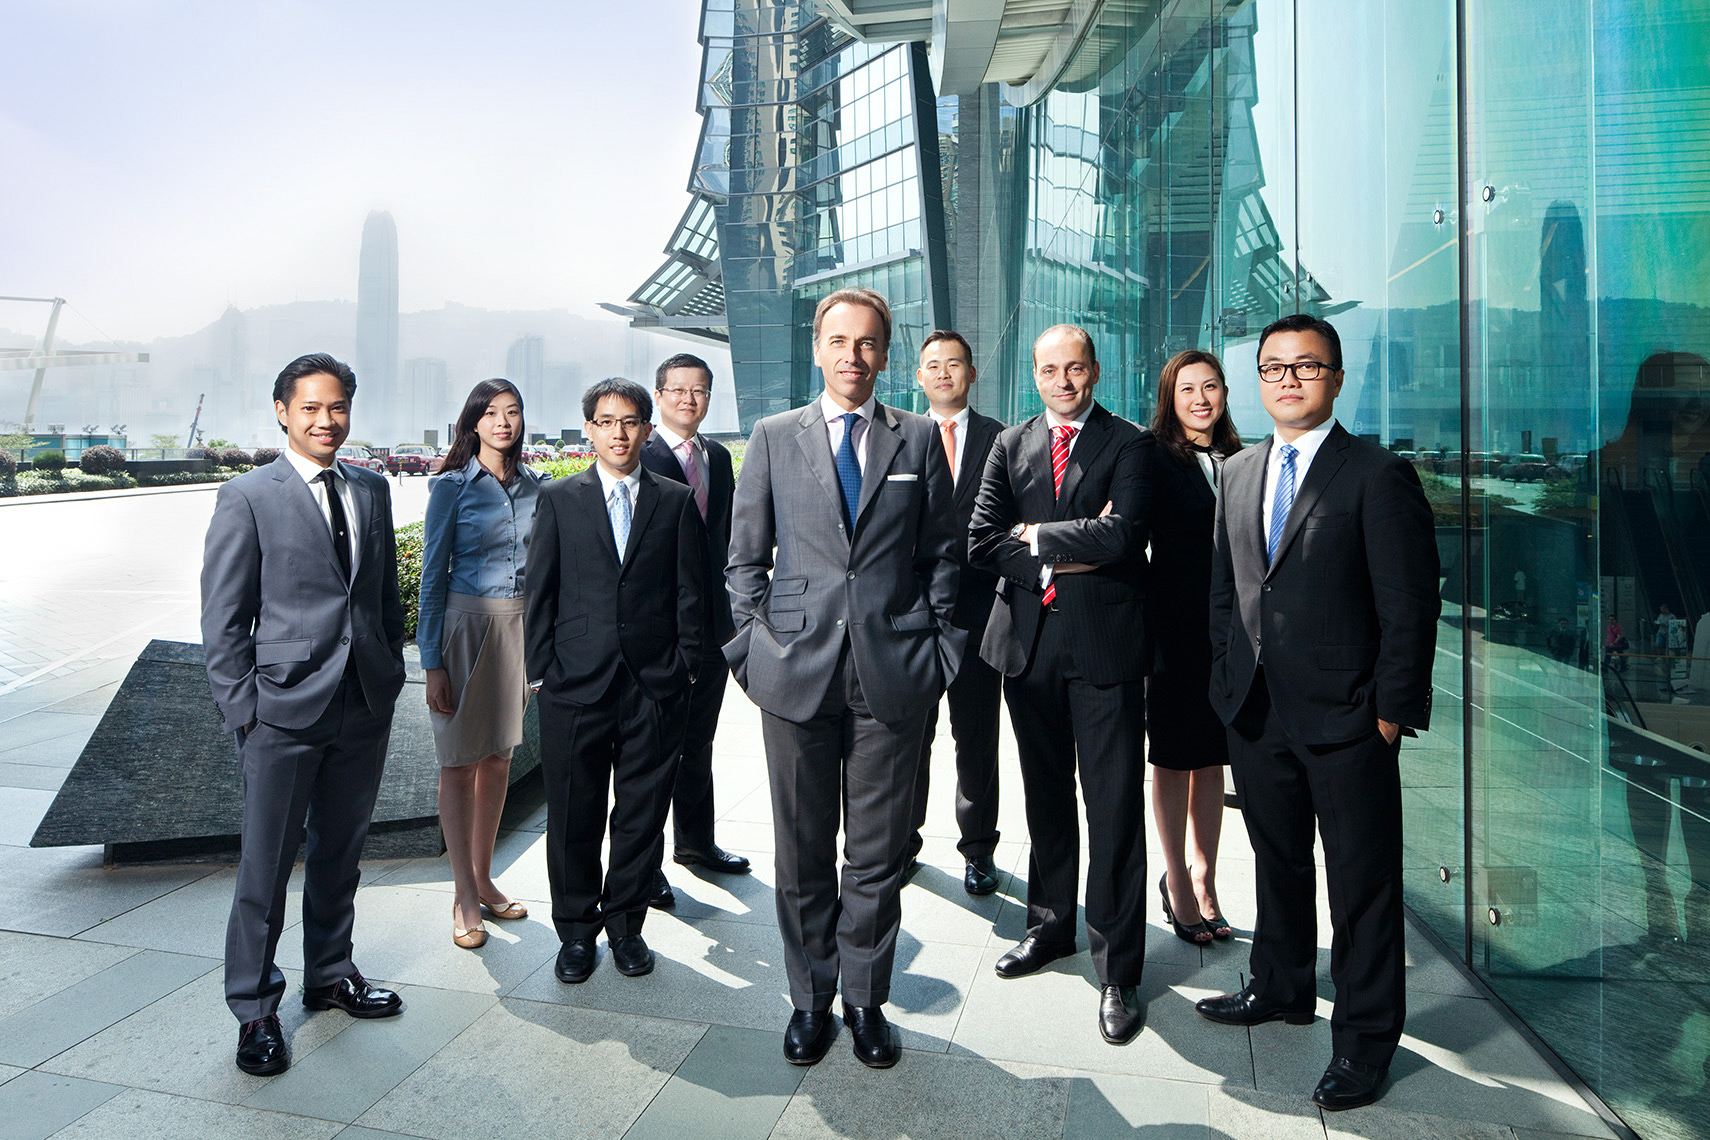 People_Corporate_01